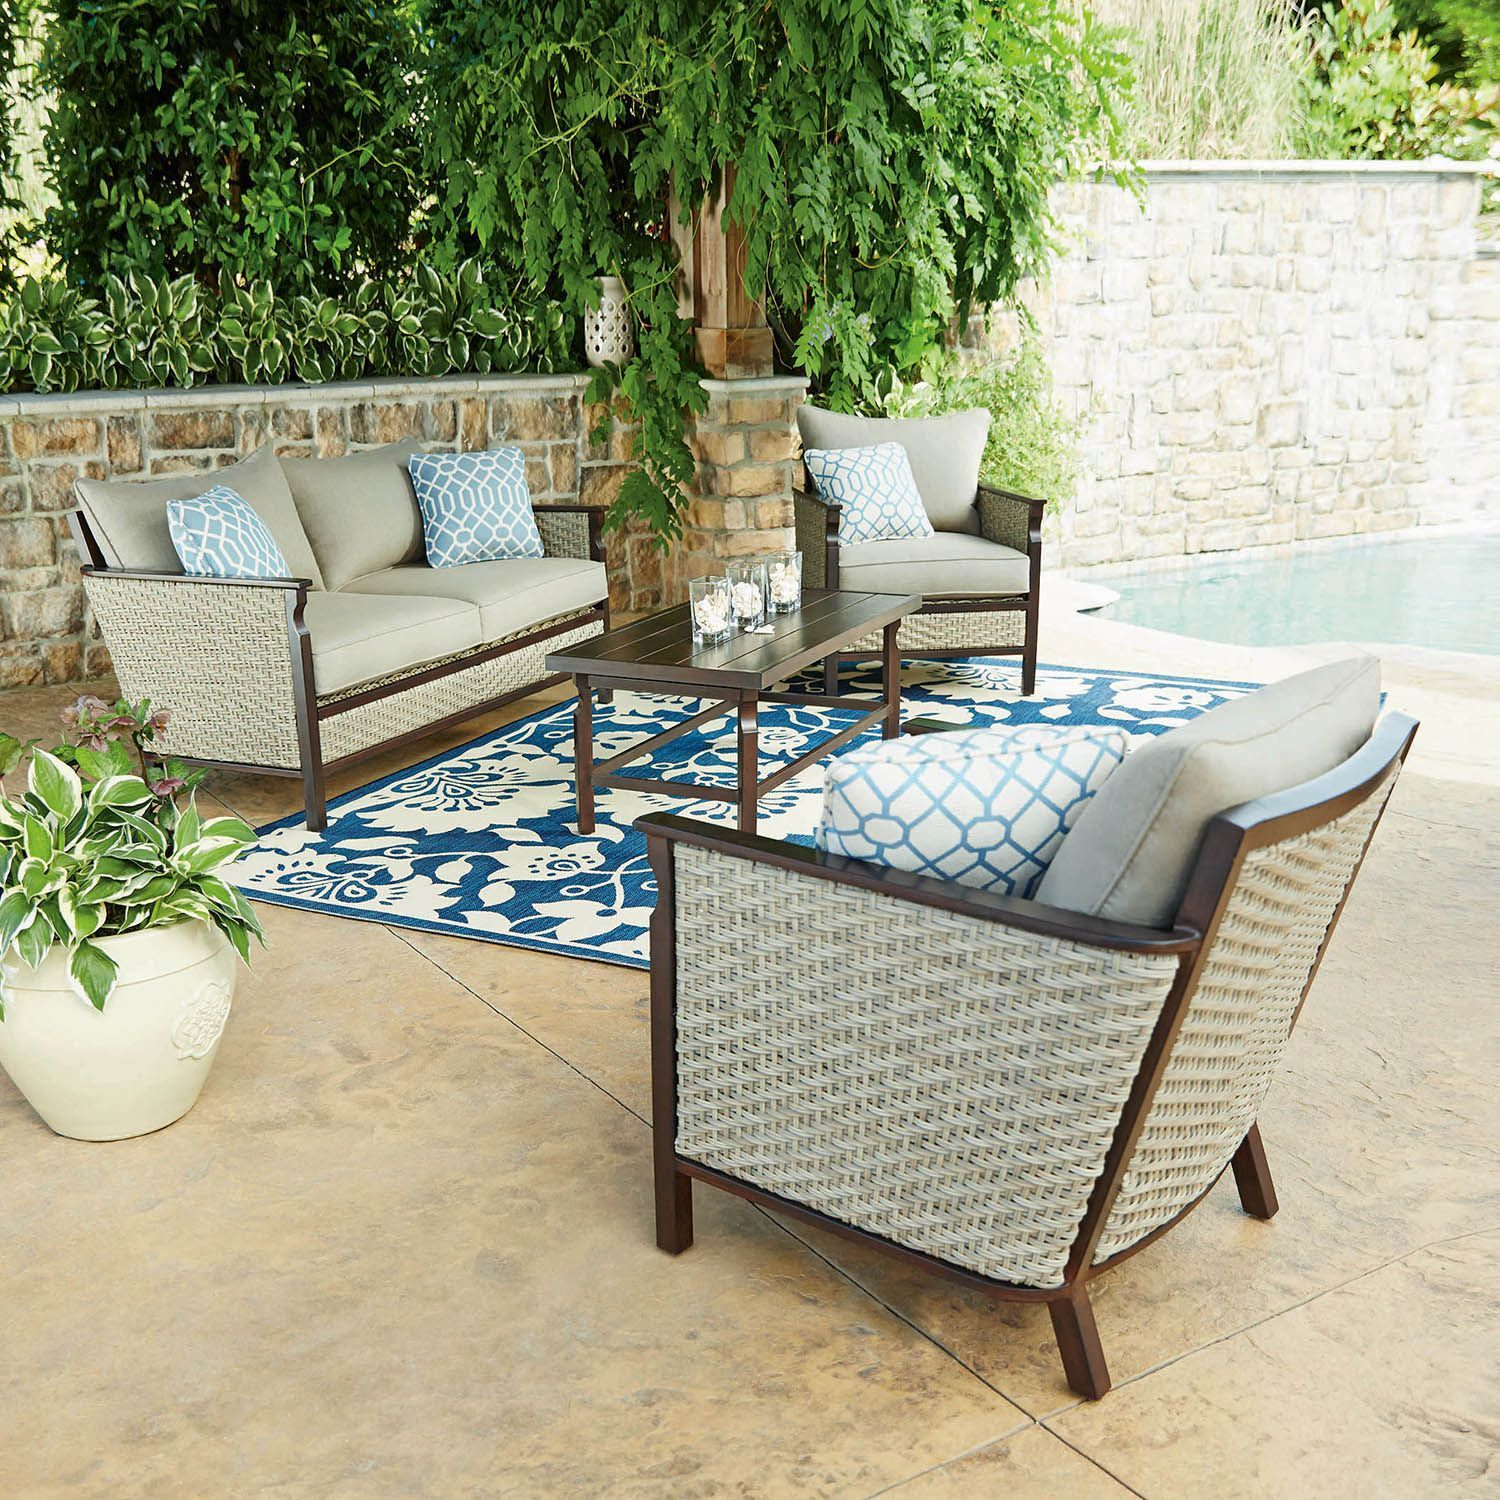 Buy Member's Mark Cole 4-Piece Seating Set : Patio Furniture with Sunbrella  at SamsClub.com - Buy Member's Mark Cole 4-Piece Seating Set : Patio Furniture With